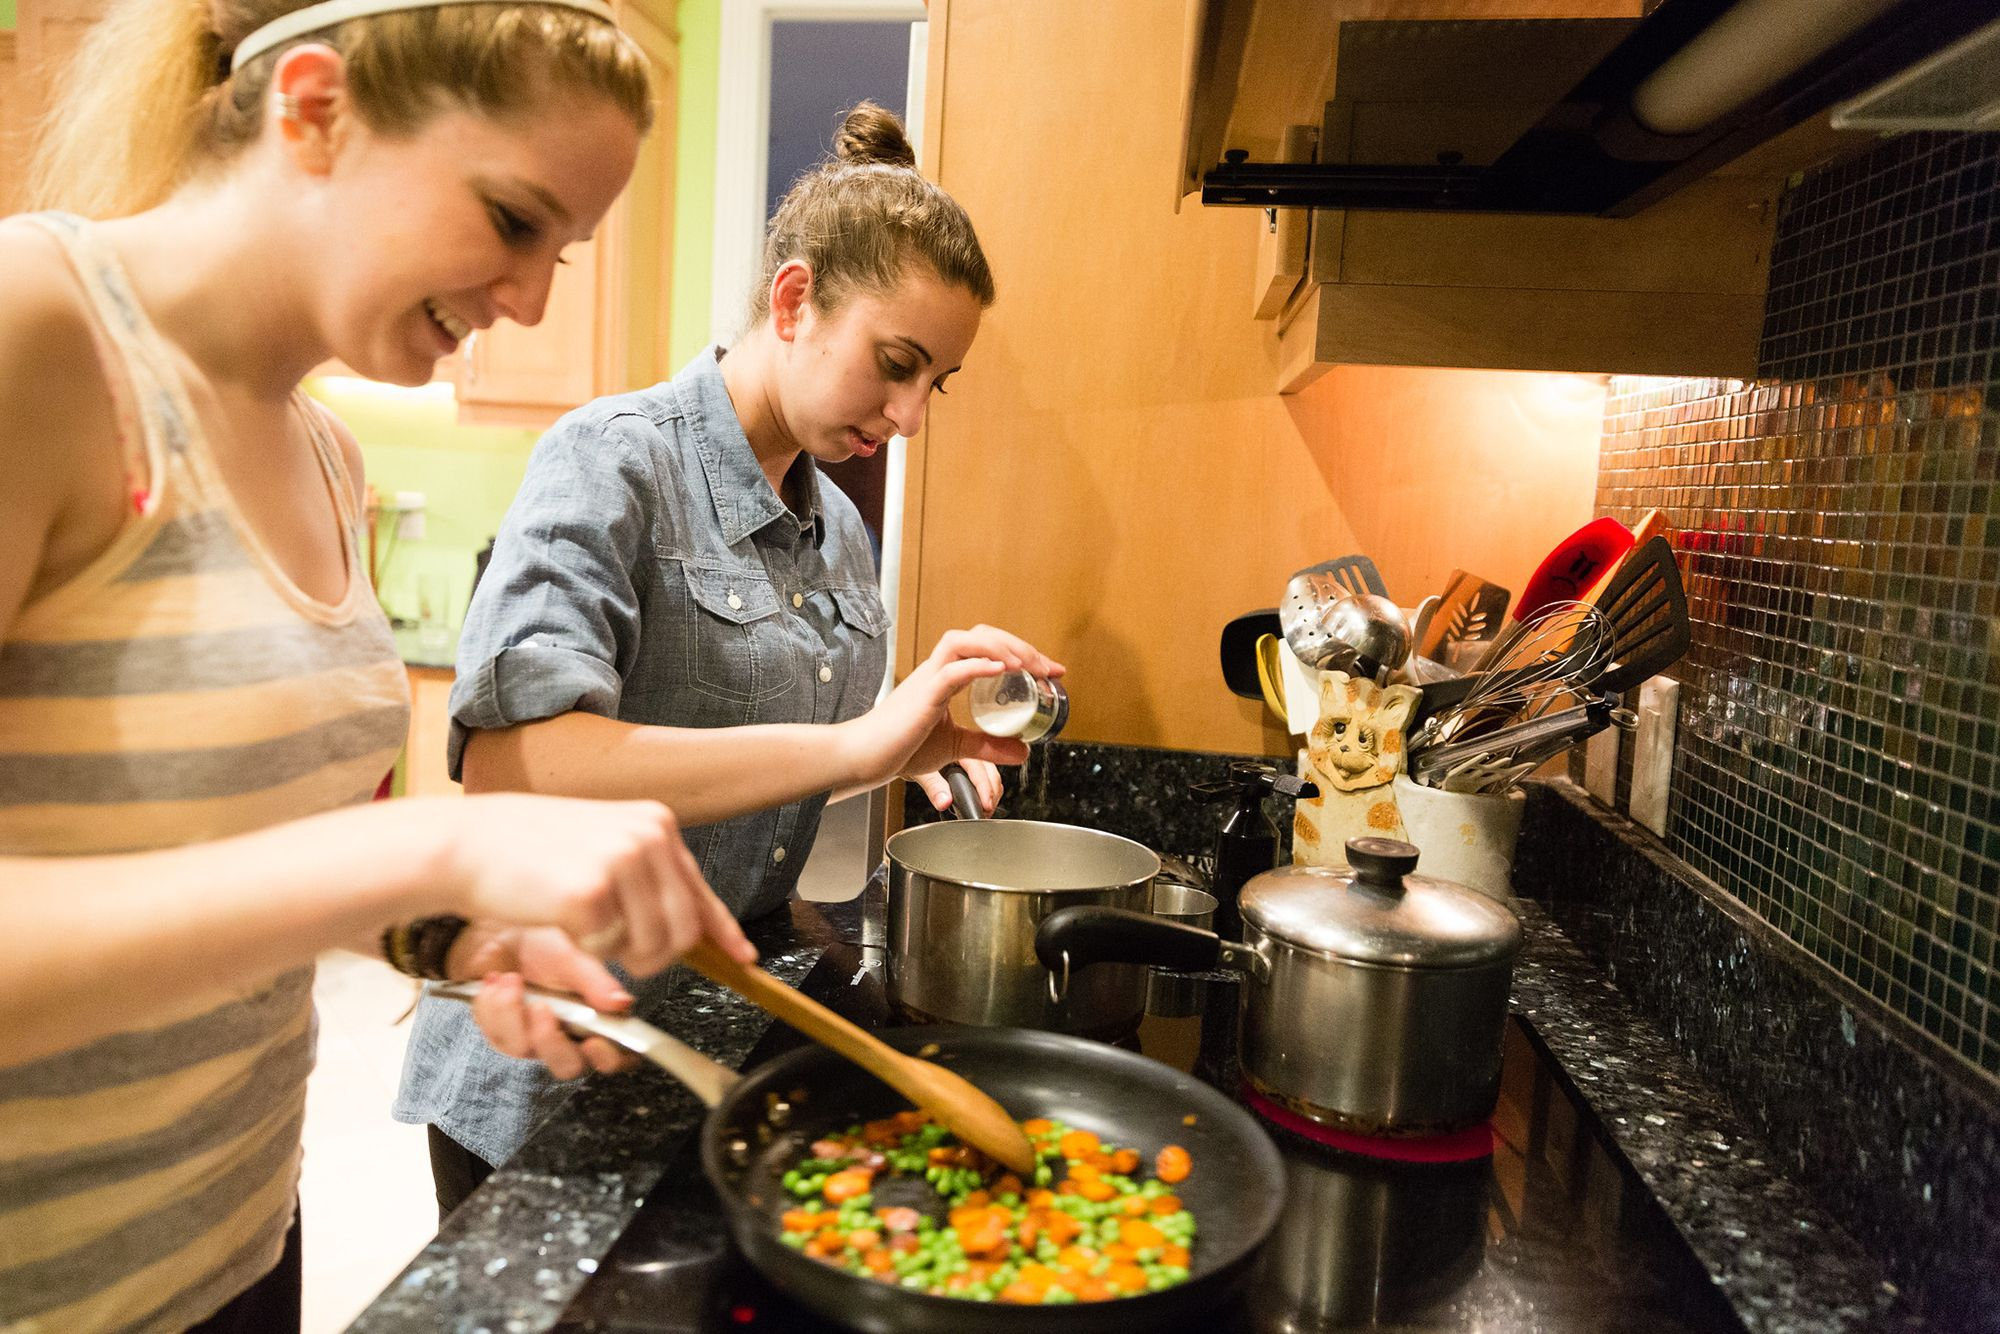 Students cooking dinner together.